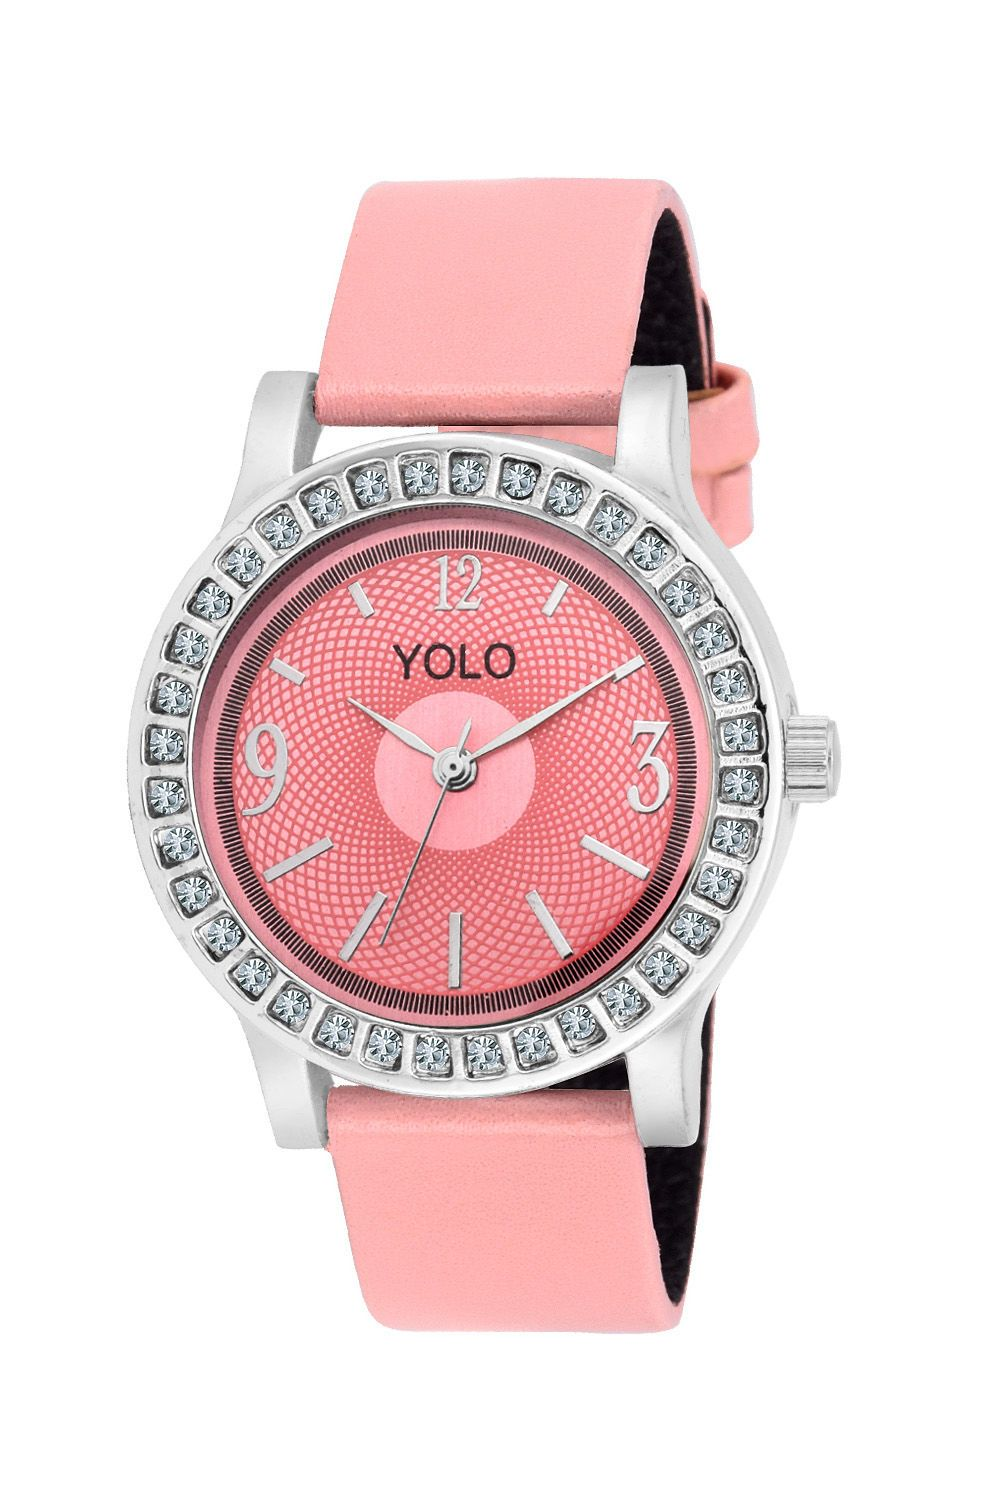 YOLO Women's Pink Dial Analog Wrist Watch with Pink Leather Strap Is A Unique And Innovative Product In The Wrist Watches Market. This Amazing, Stylish Fashion Watch Has Arrived To Complement Your Look And Attitude